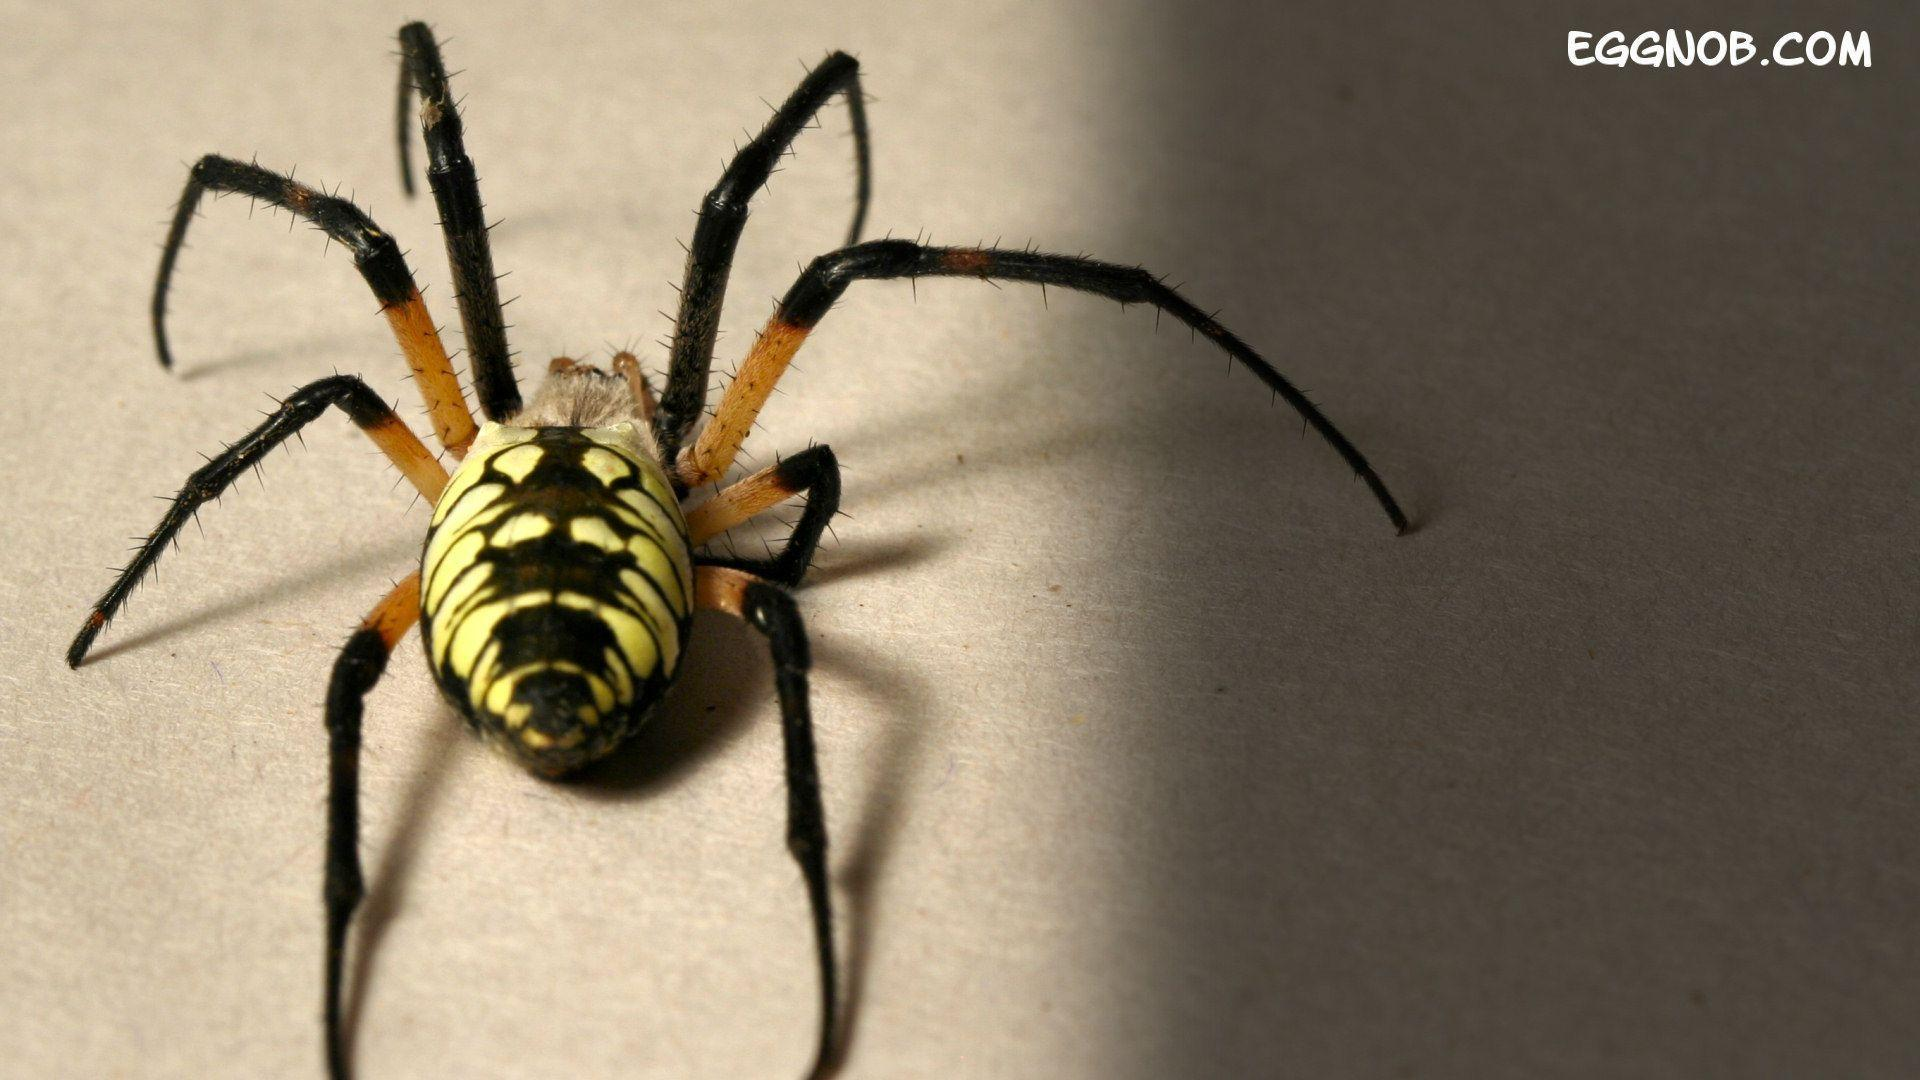 Big Spider HD Wallpapers - HD Wallpapers Inn